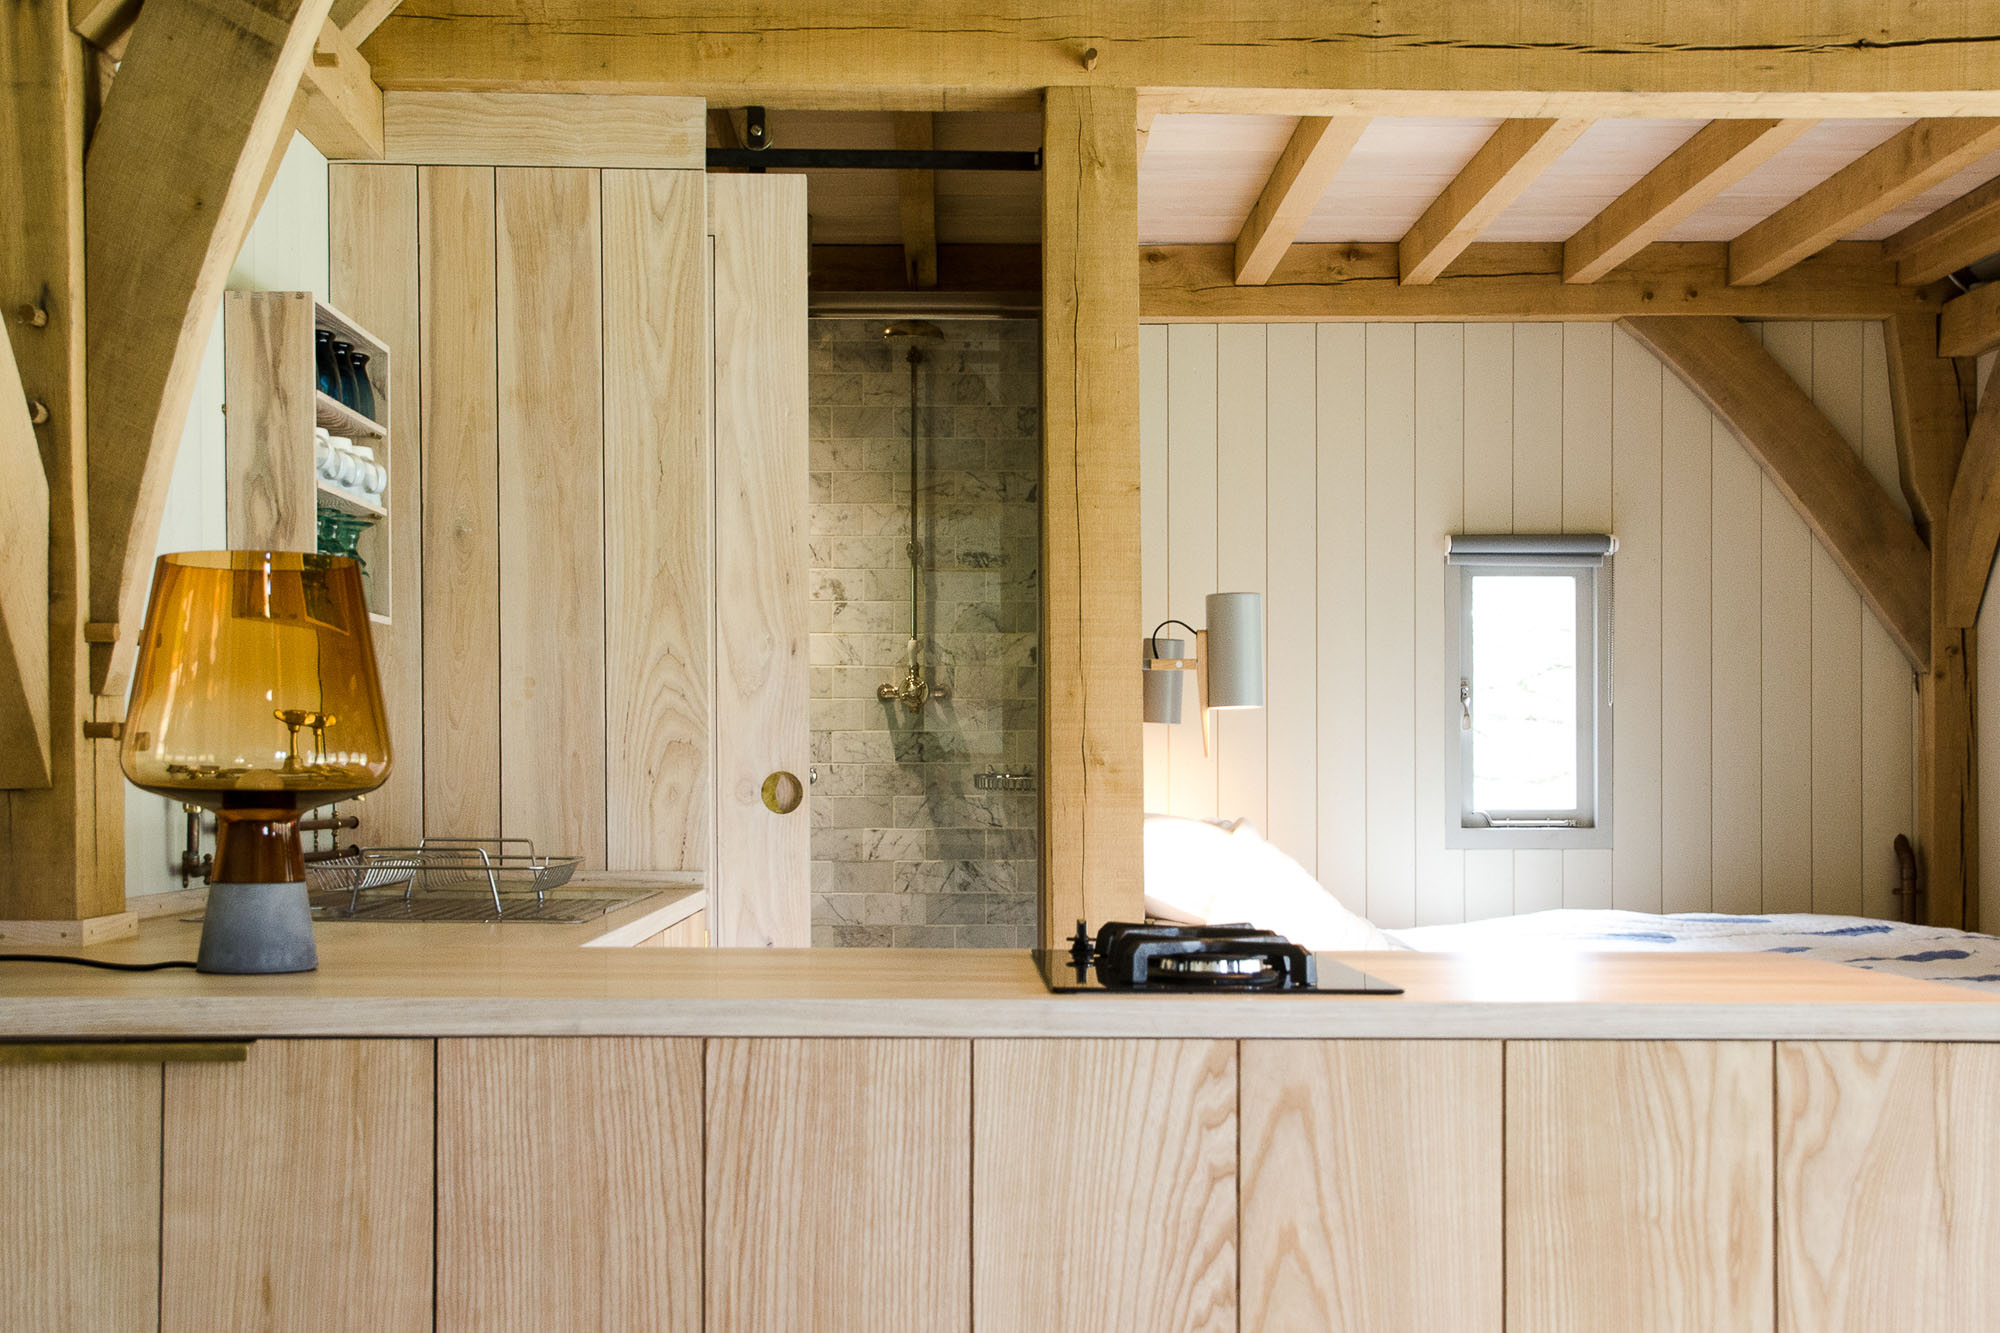 off grid wooden oak framed cabin interior with built on kitchen and marble bathroom